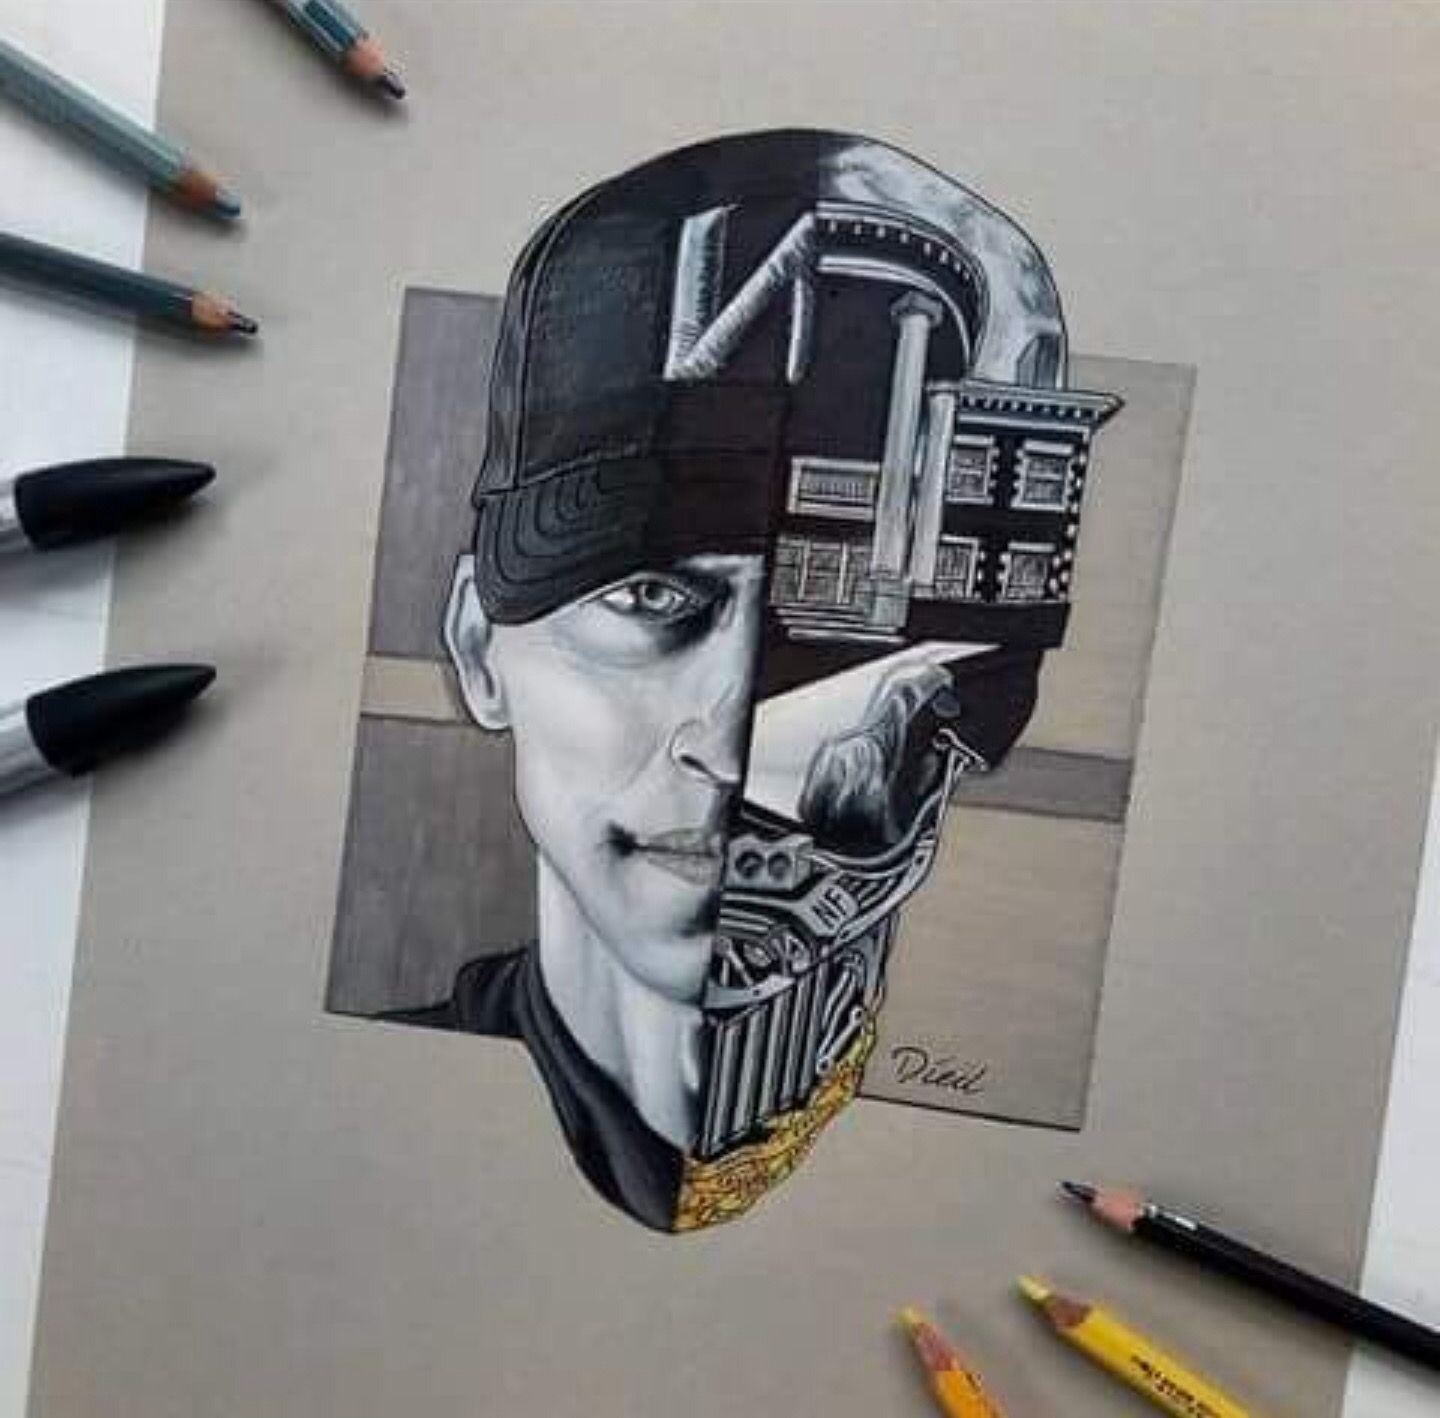 Nf real music image by Kristik Lukinov on NfRealMusic